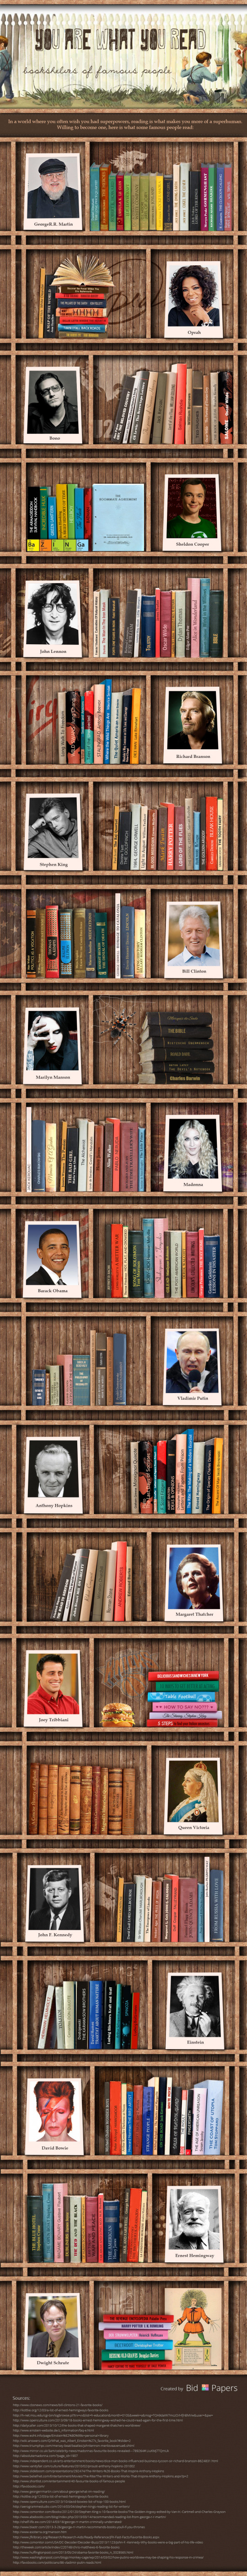 You Are What You Read: Reading List of Famous People